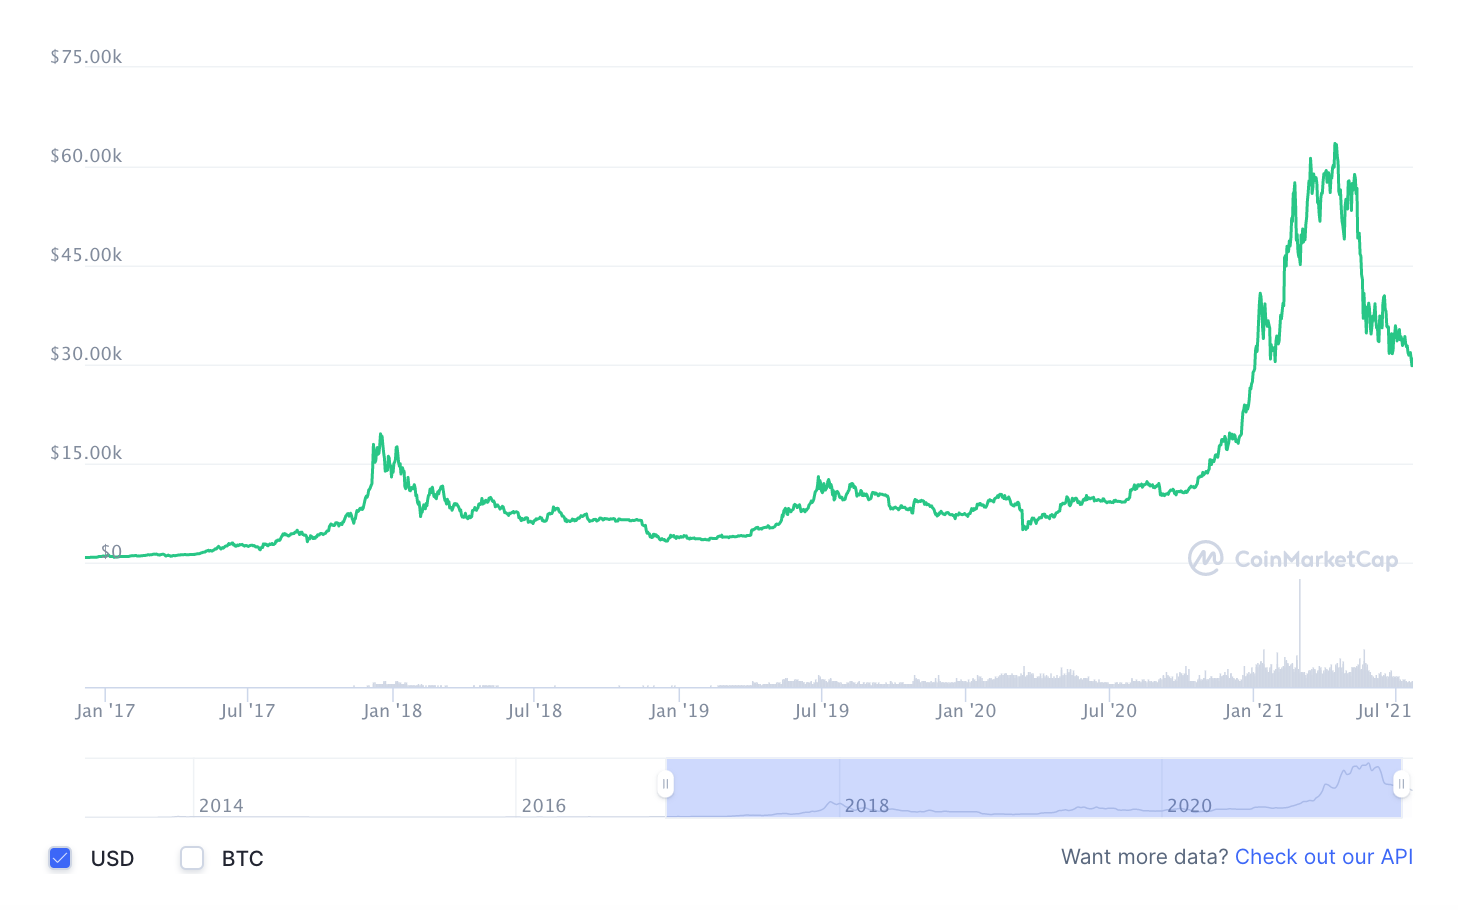 Price of bitcoin in USD from January 2017 to July 21, 2021, Source: Coinmarketcap.com